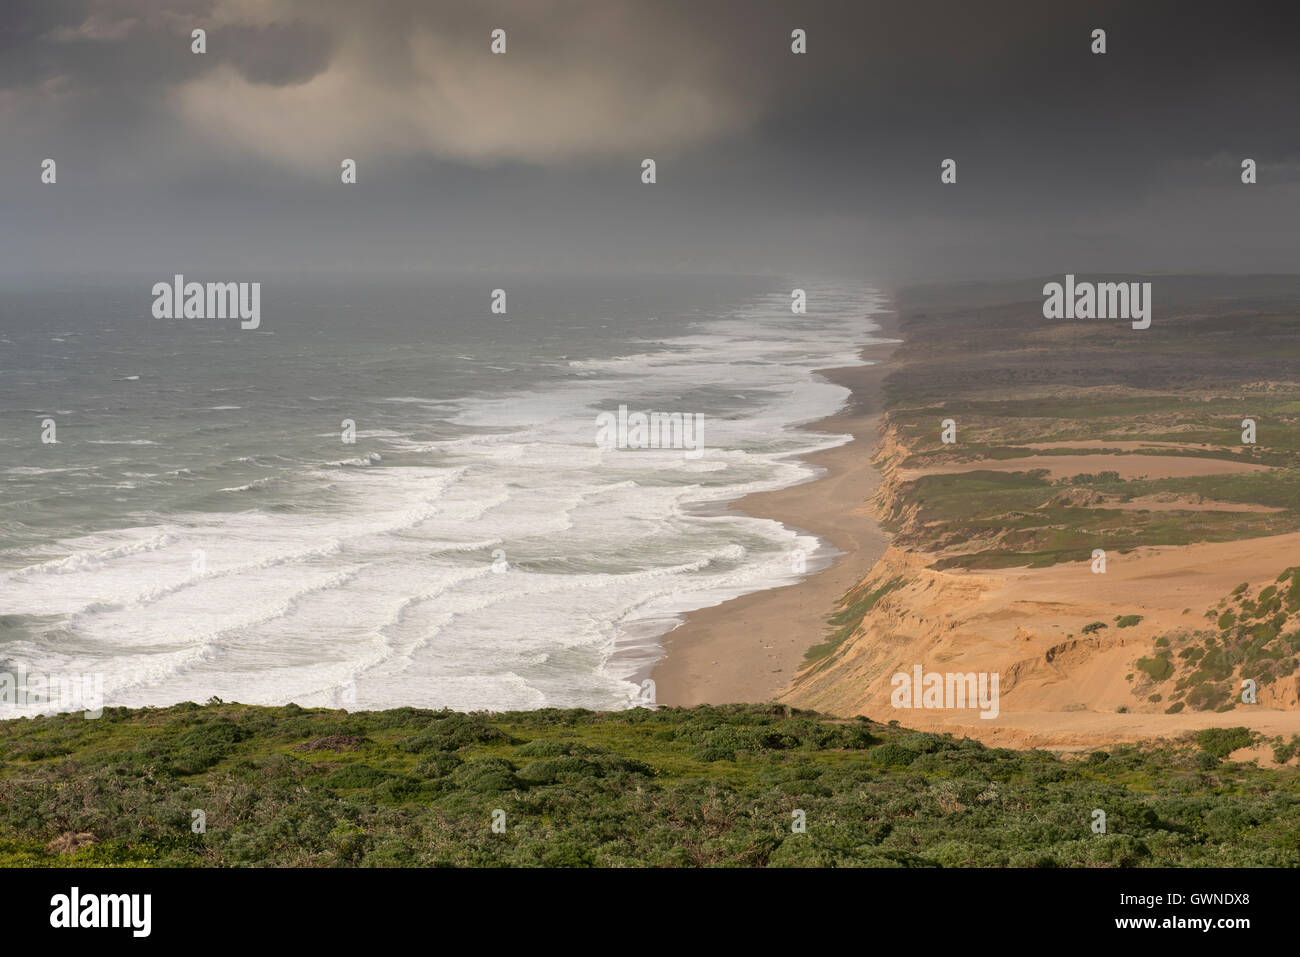 View of the West Coast of the USA, as seen from the Point Reyes Lighthouse, looking north along the Point Reyes - Stock Image